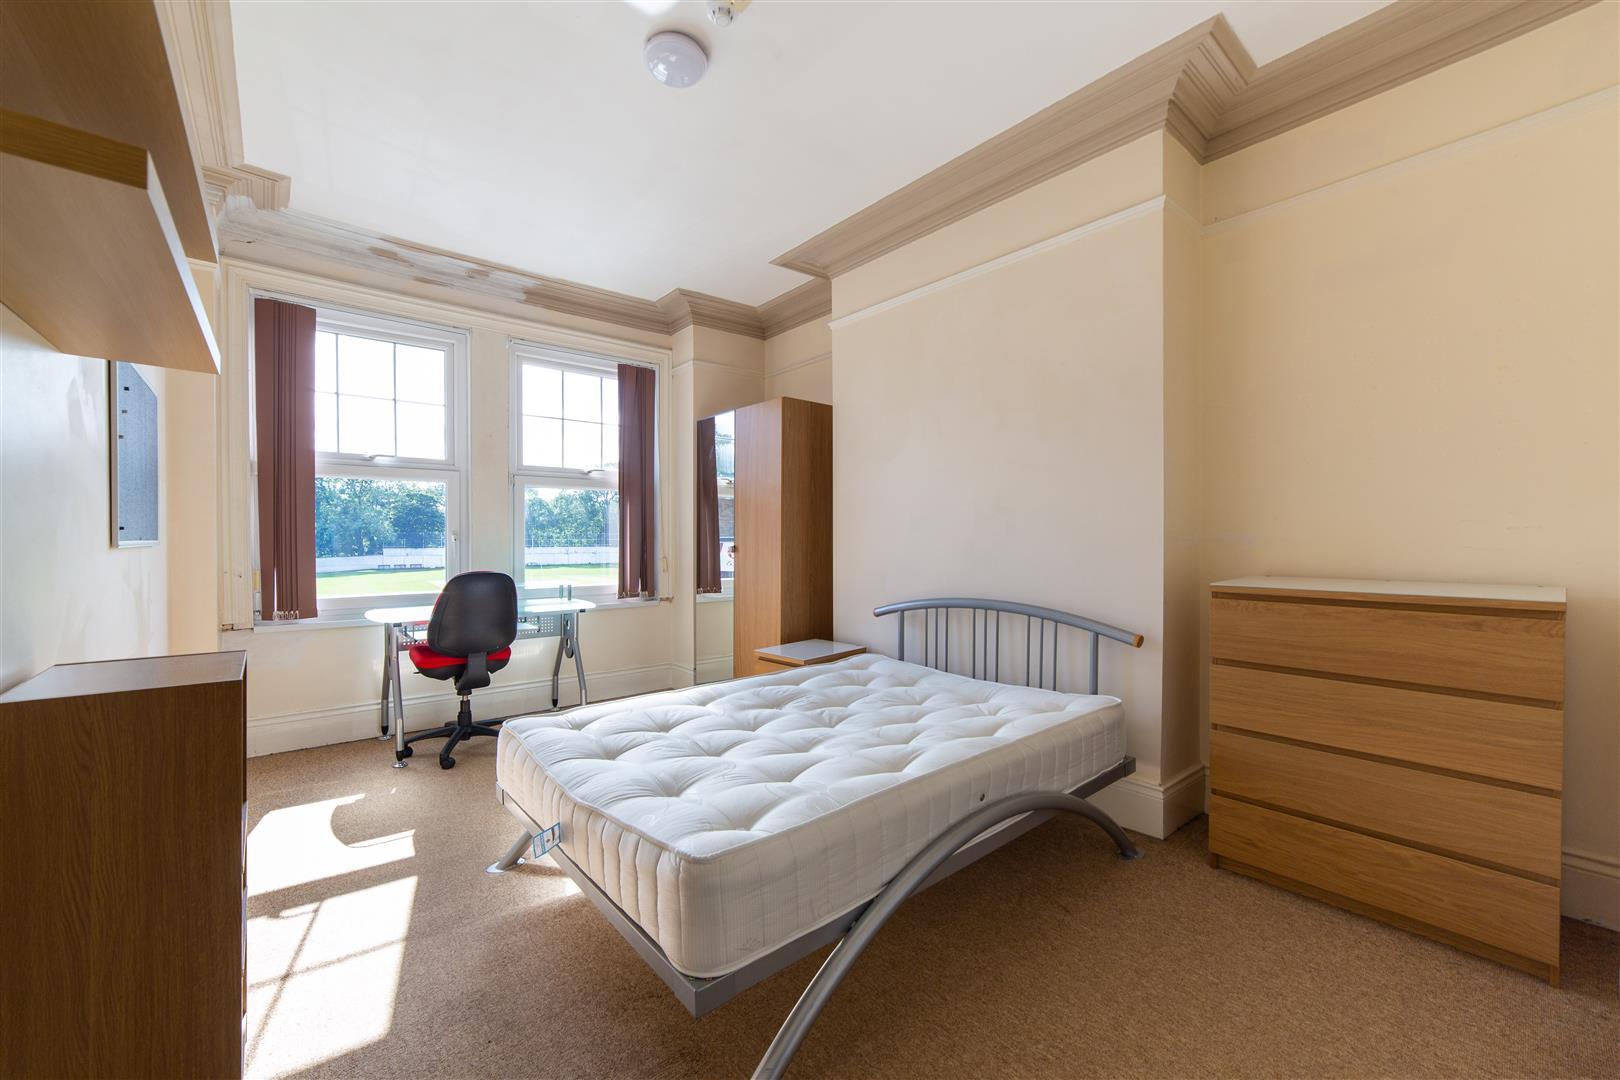 8 bed terraced house to rent in Newcastle Upon Tyne, NE2 1JS  - Property Image 7